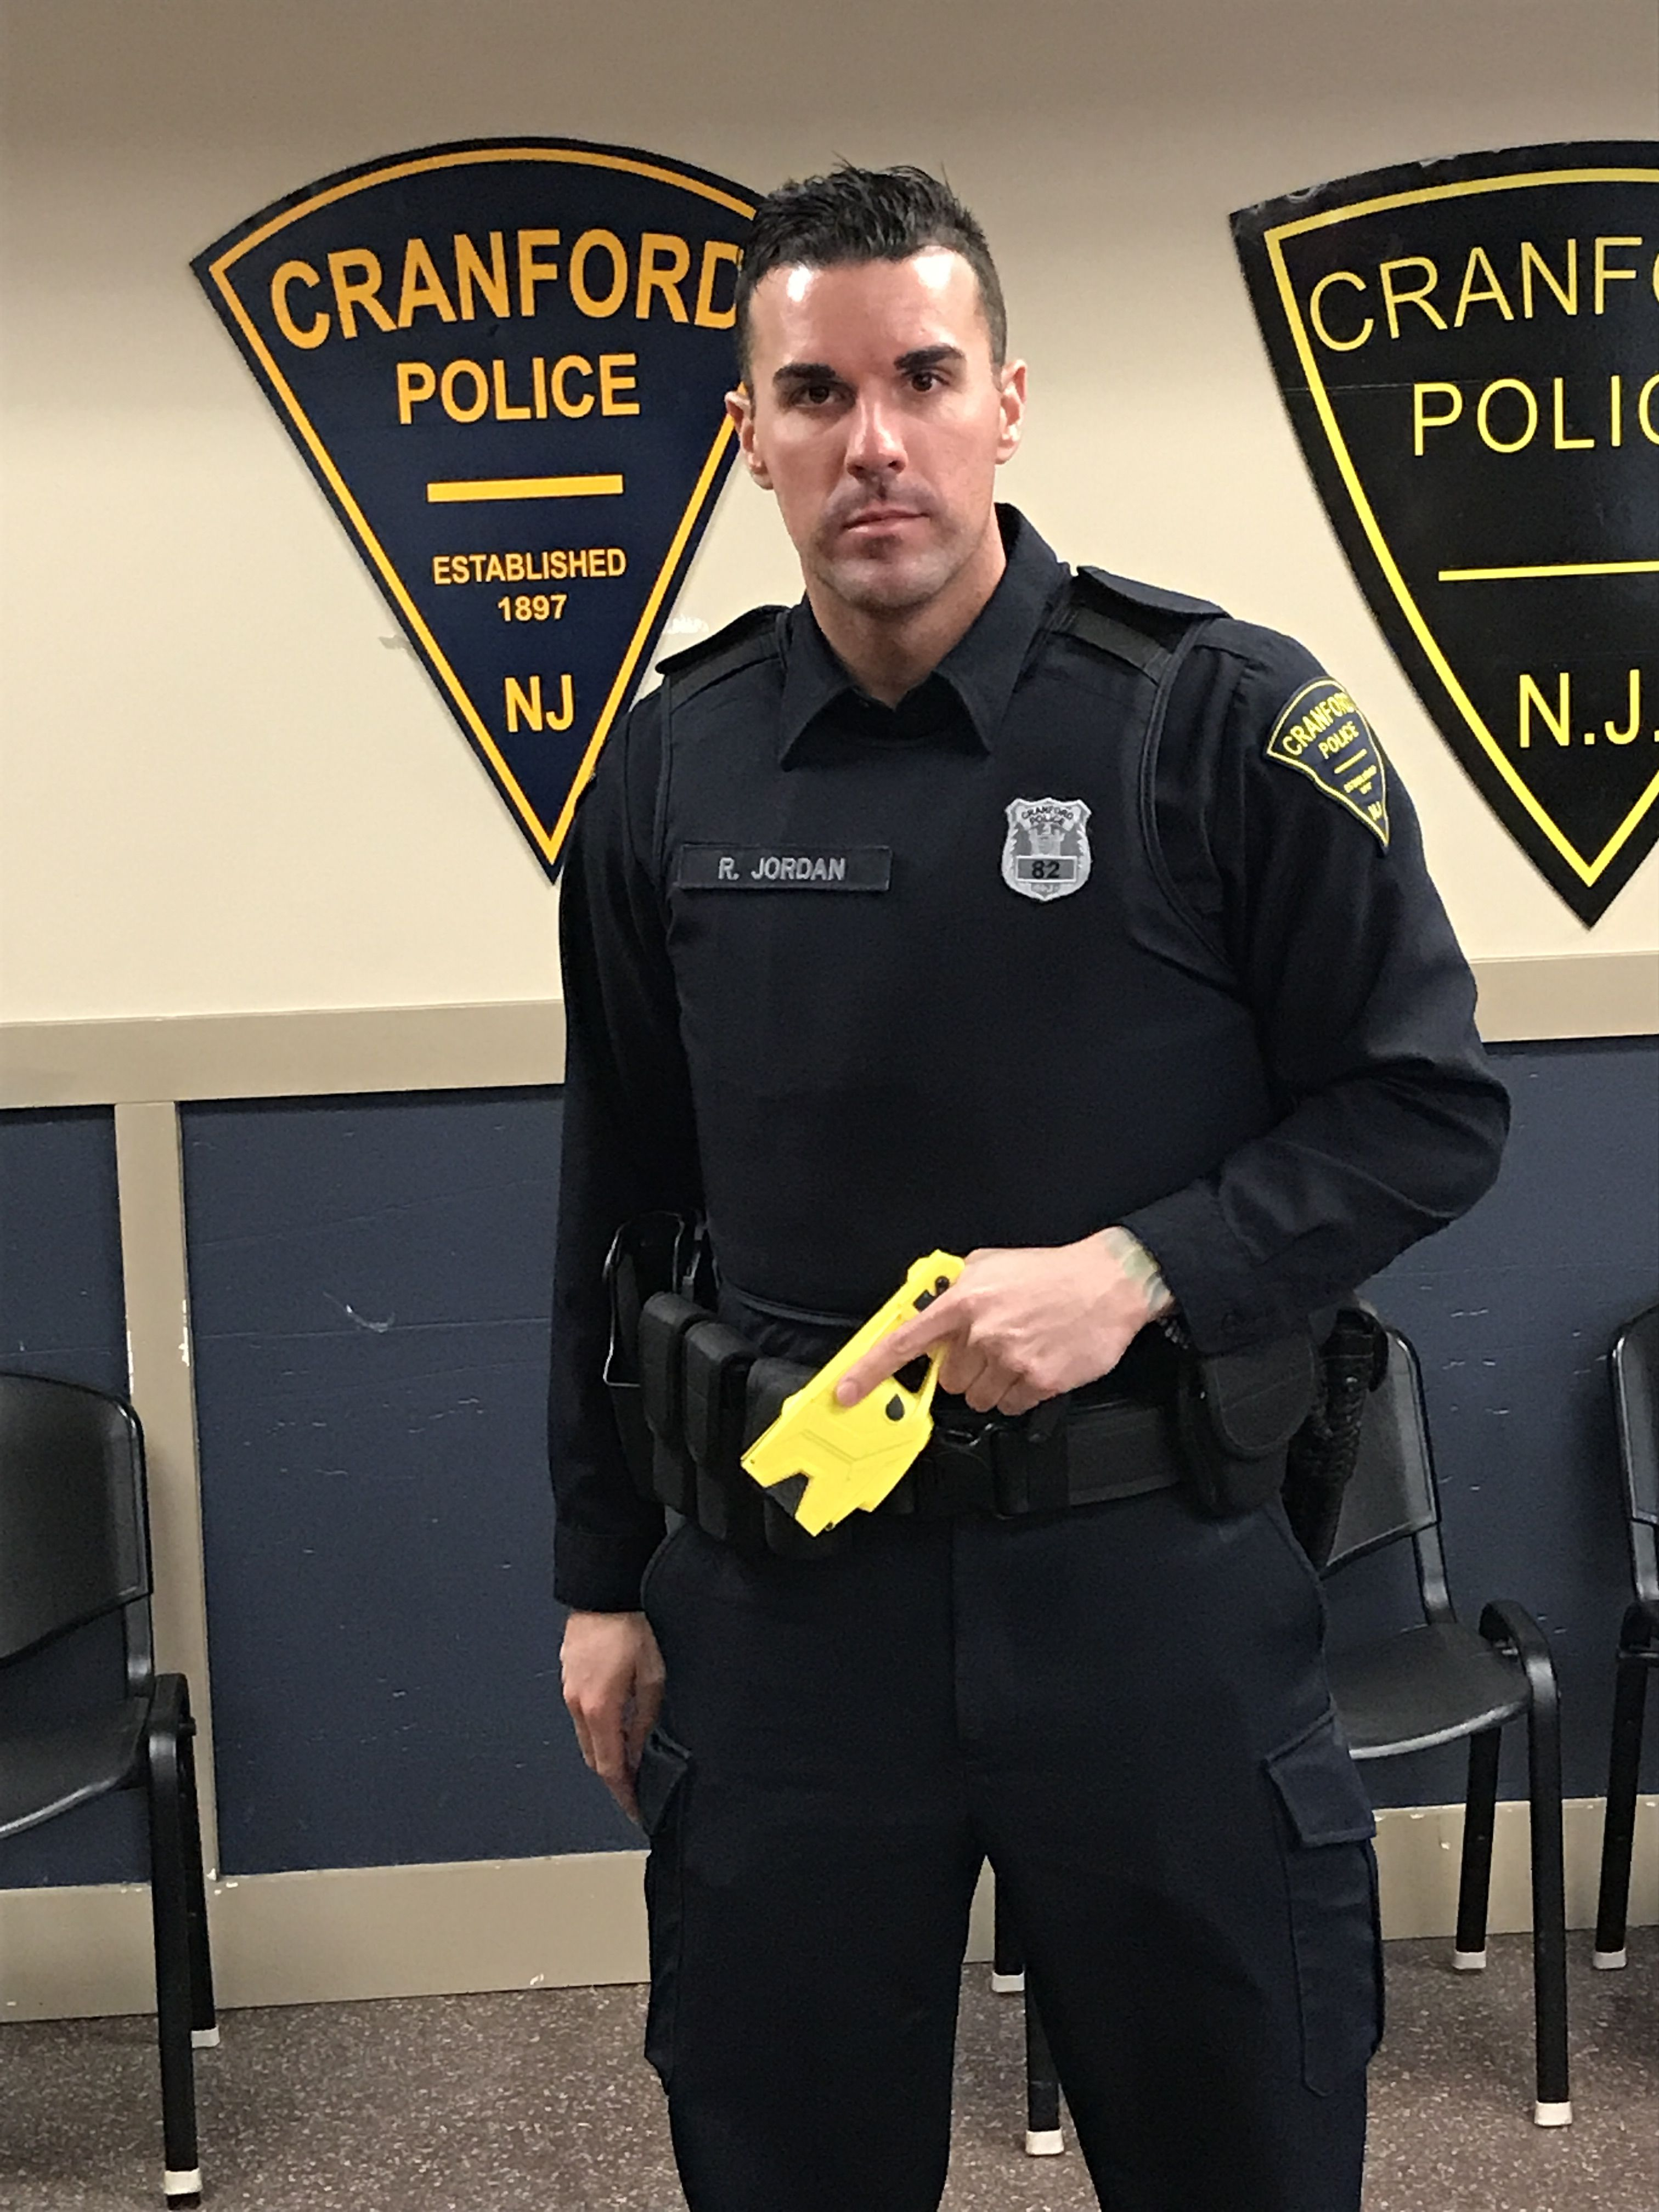 Pin By Cranford Police Department On 2017 Police Cranford Police Department